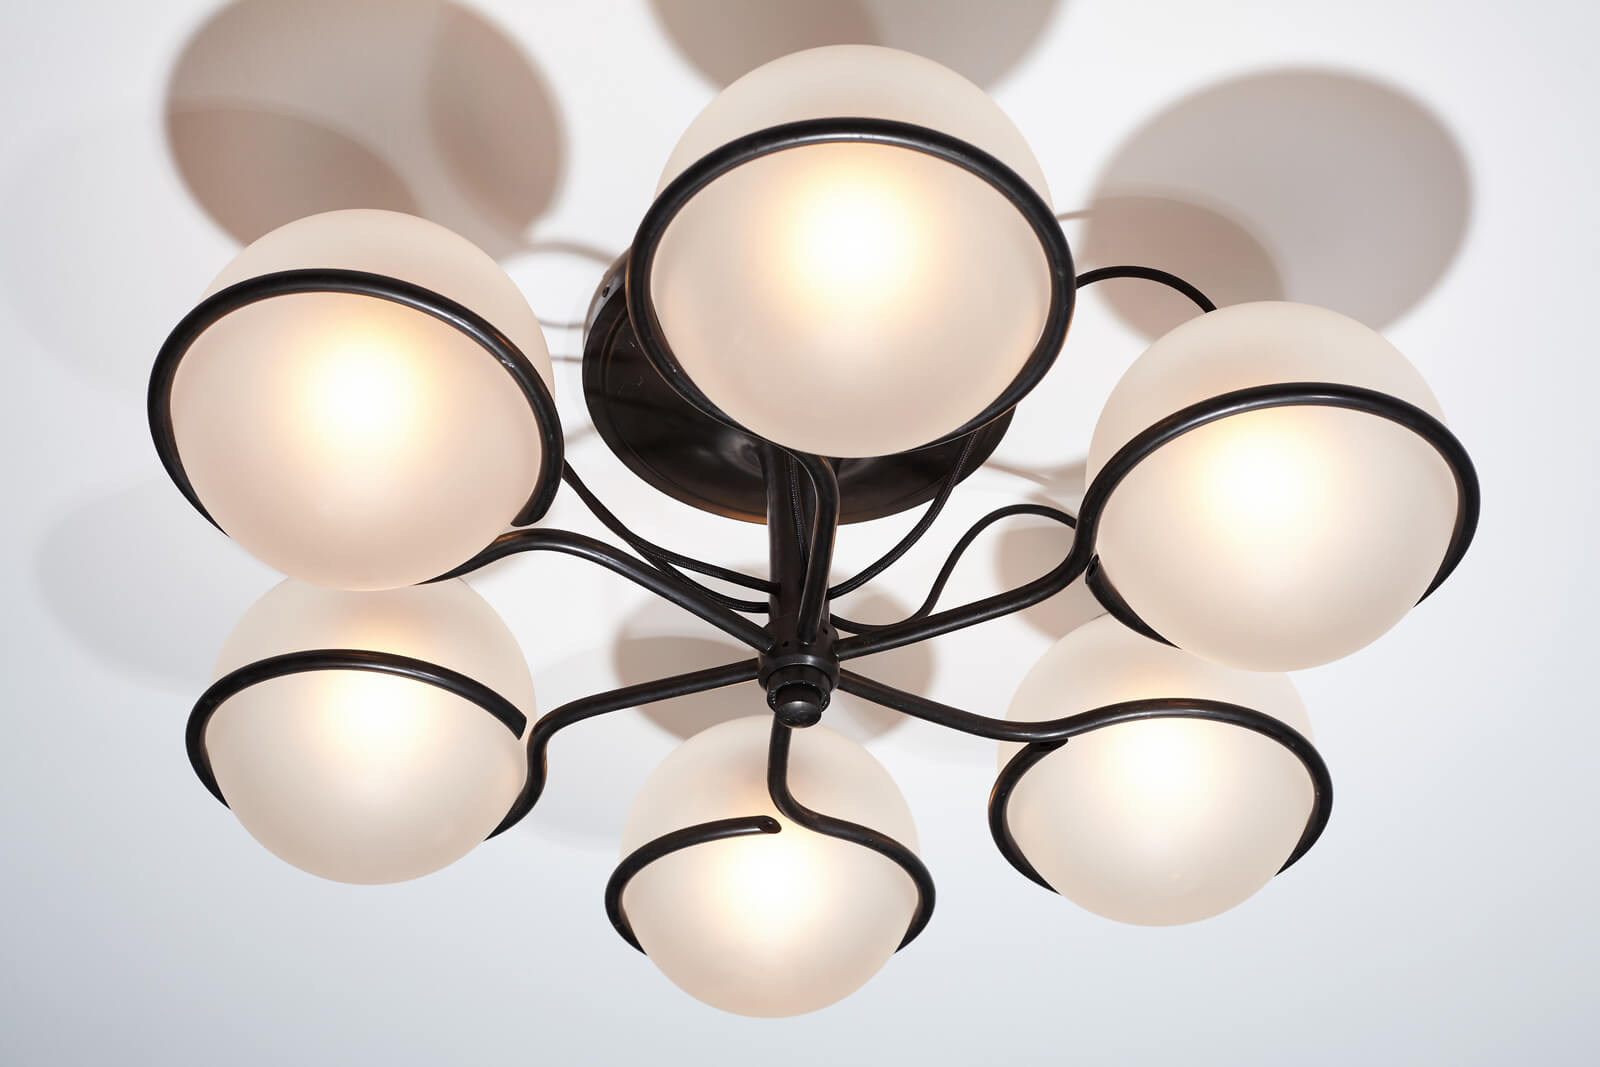 Ceiling lamp Model 2042/6 by Gino Sarfatti for sale